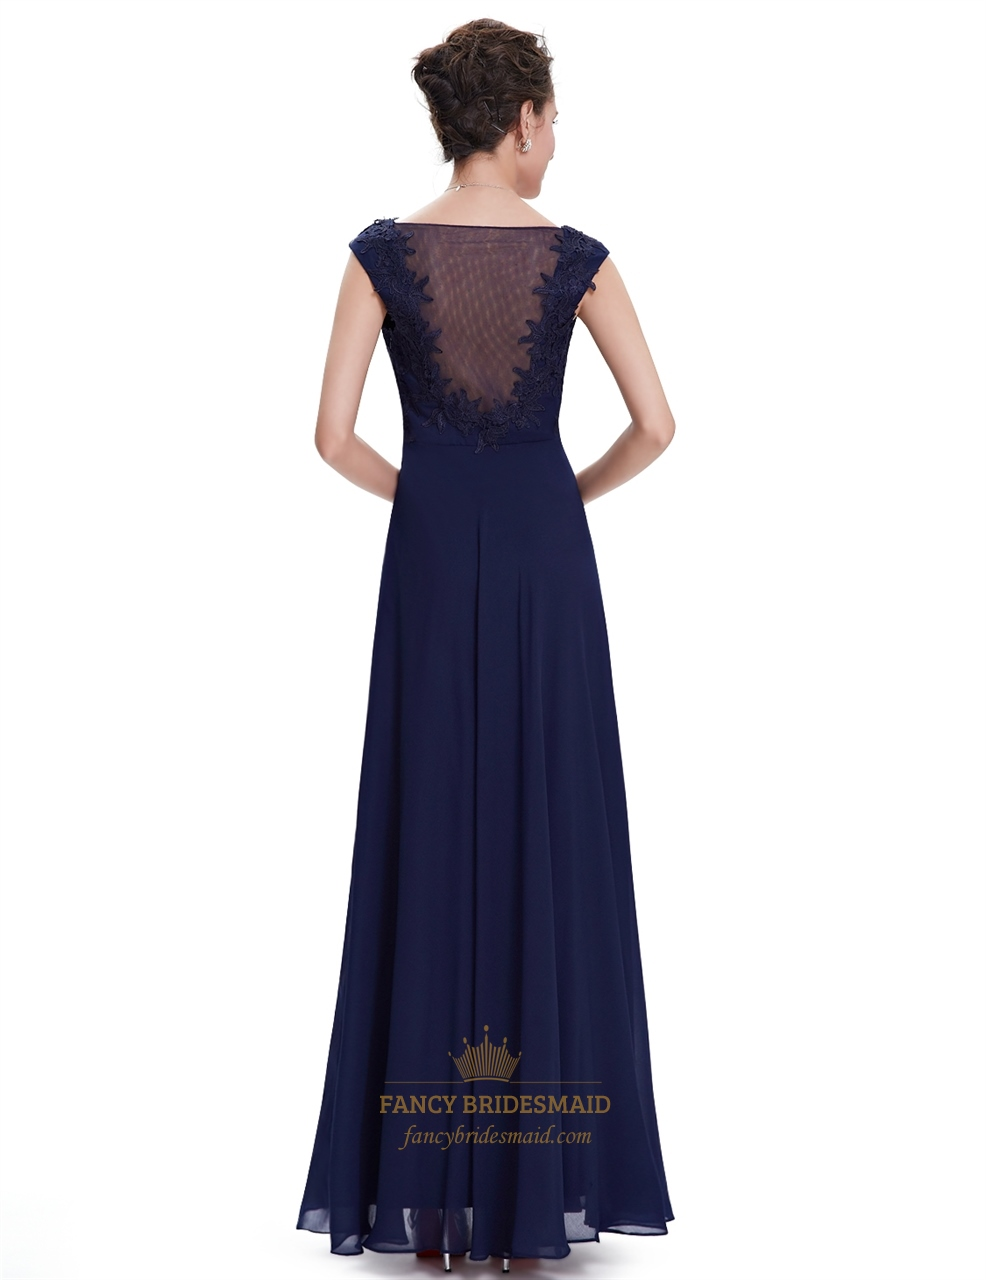 Navy long blue bridesmaid dresses with sleeves